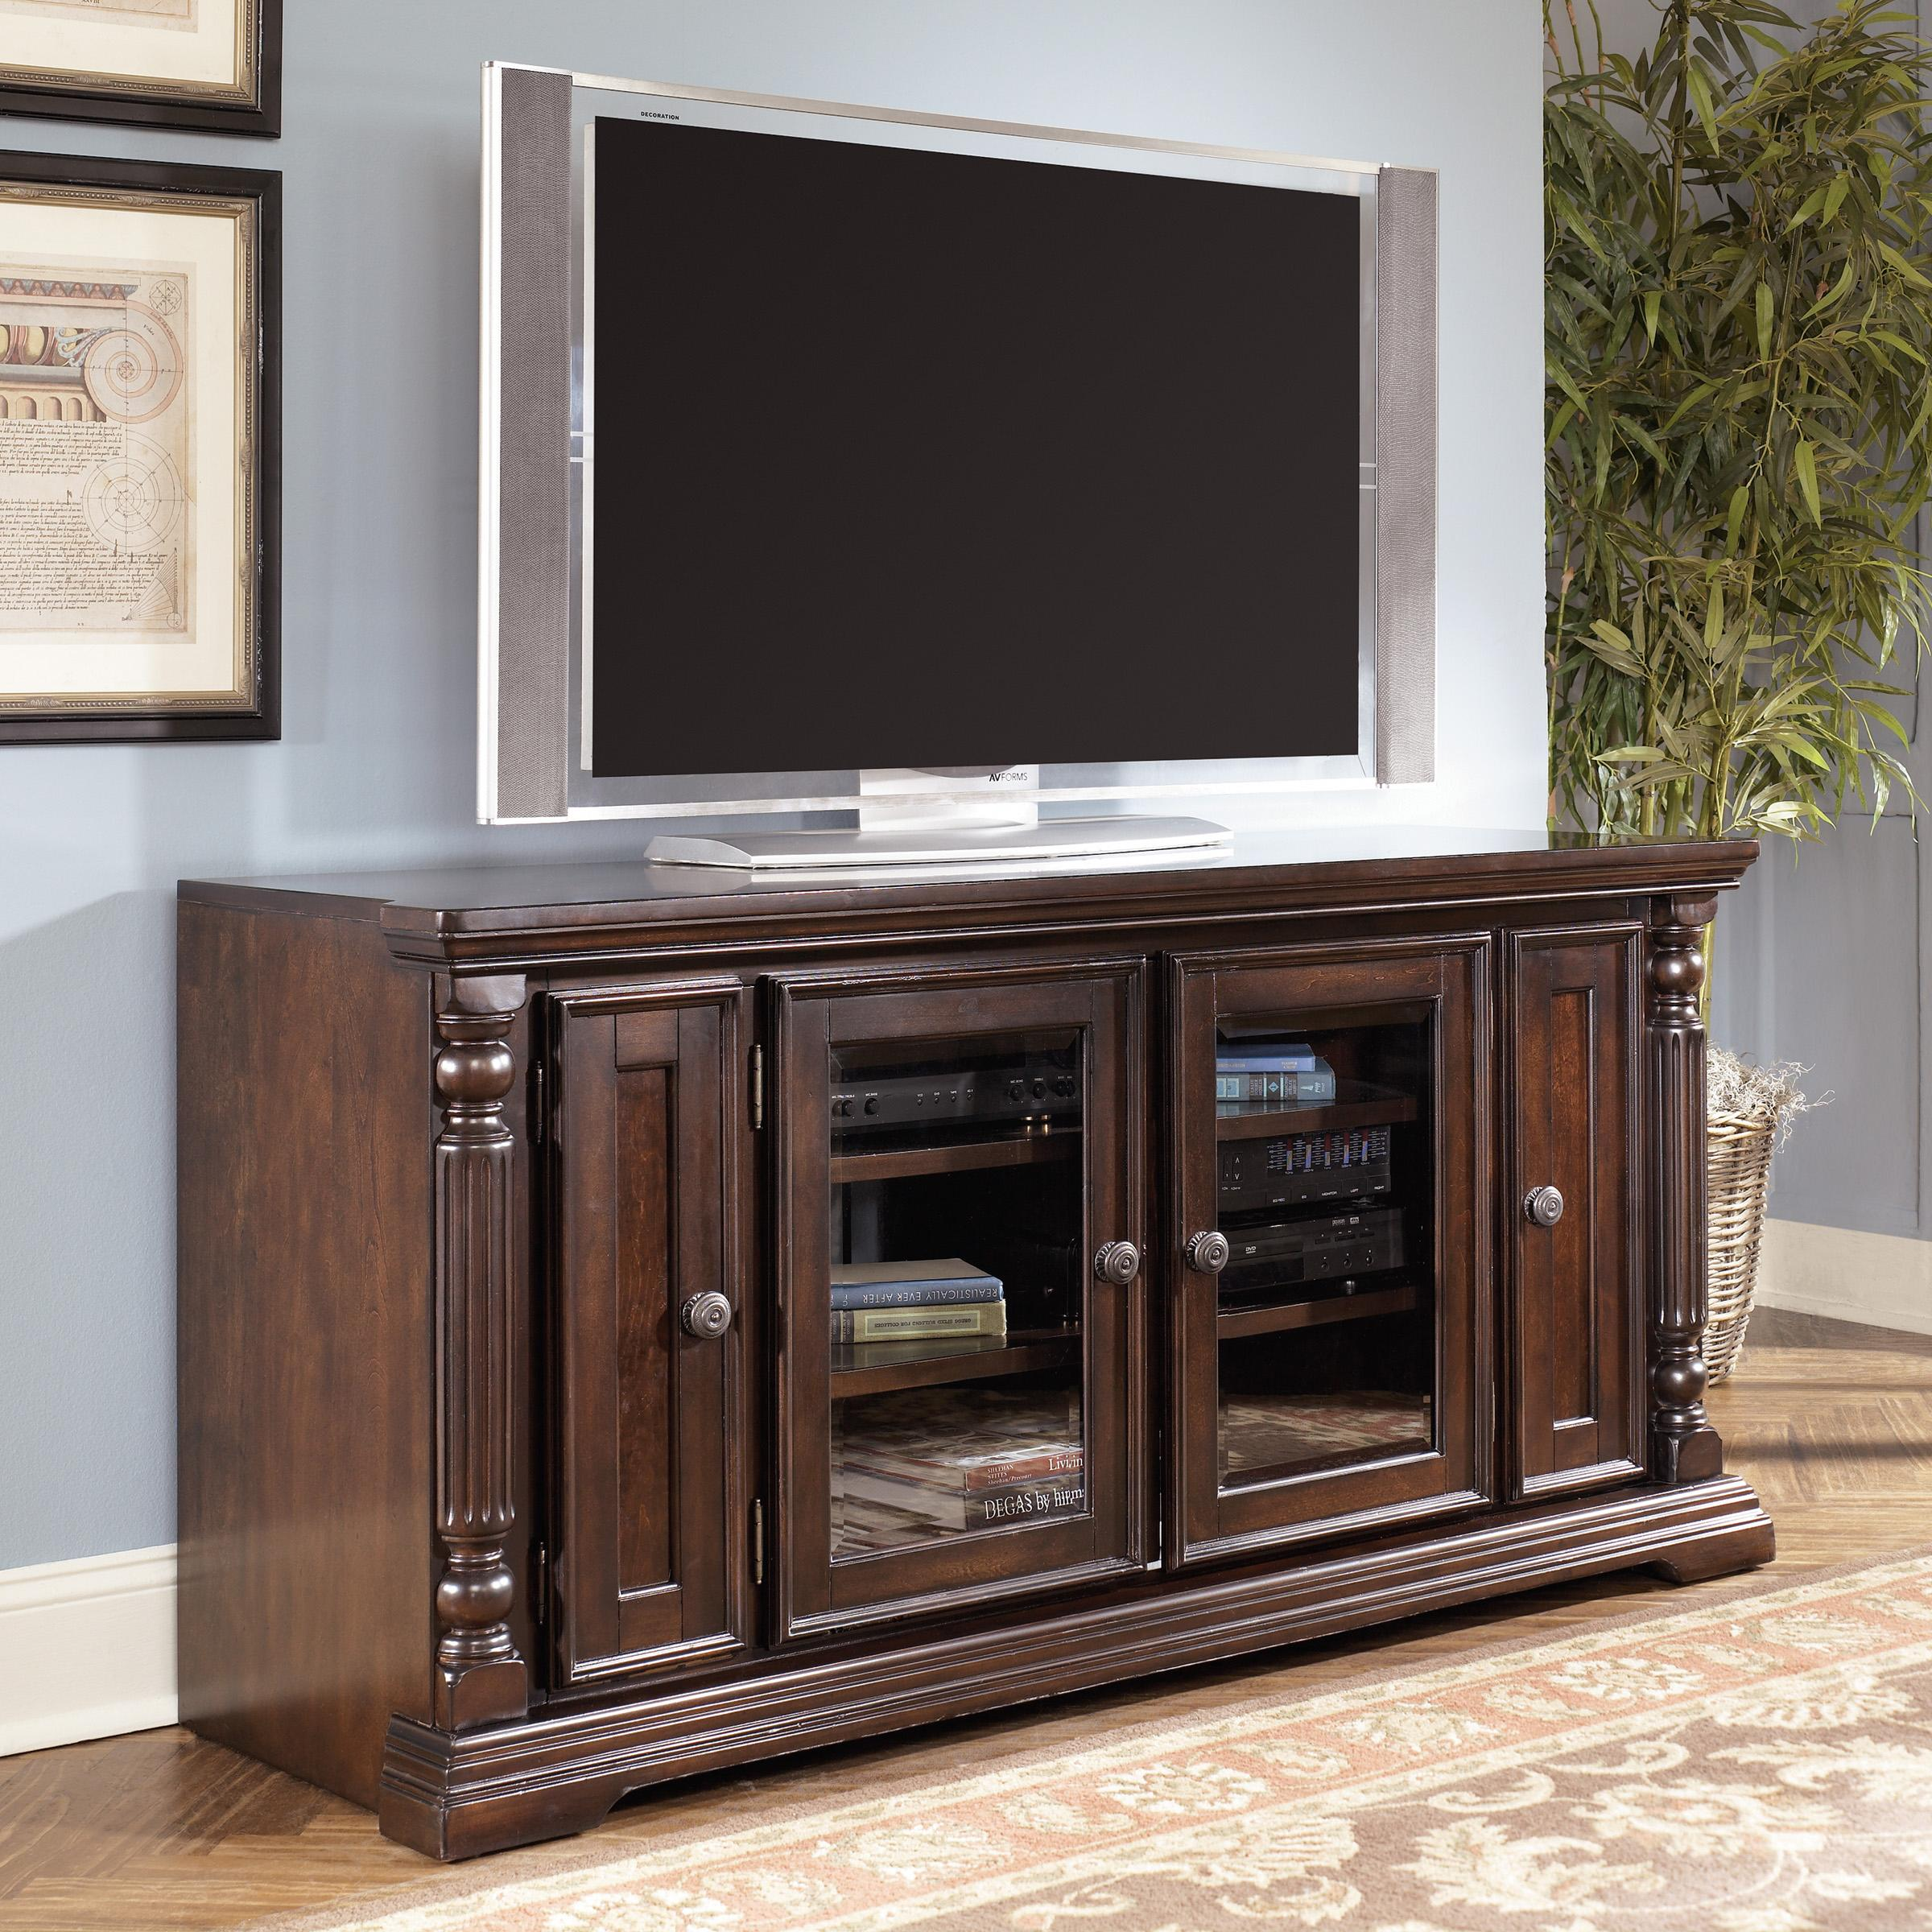 liquidation room styling dress of any the this furniture classic carlo from would home center liquidators up clean monte desk and